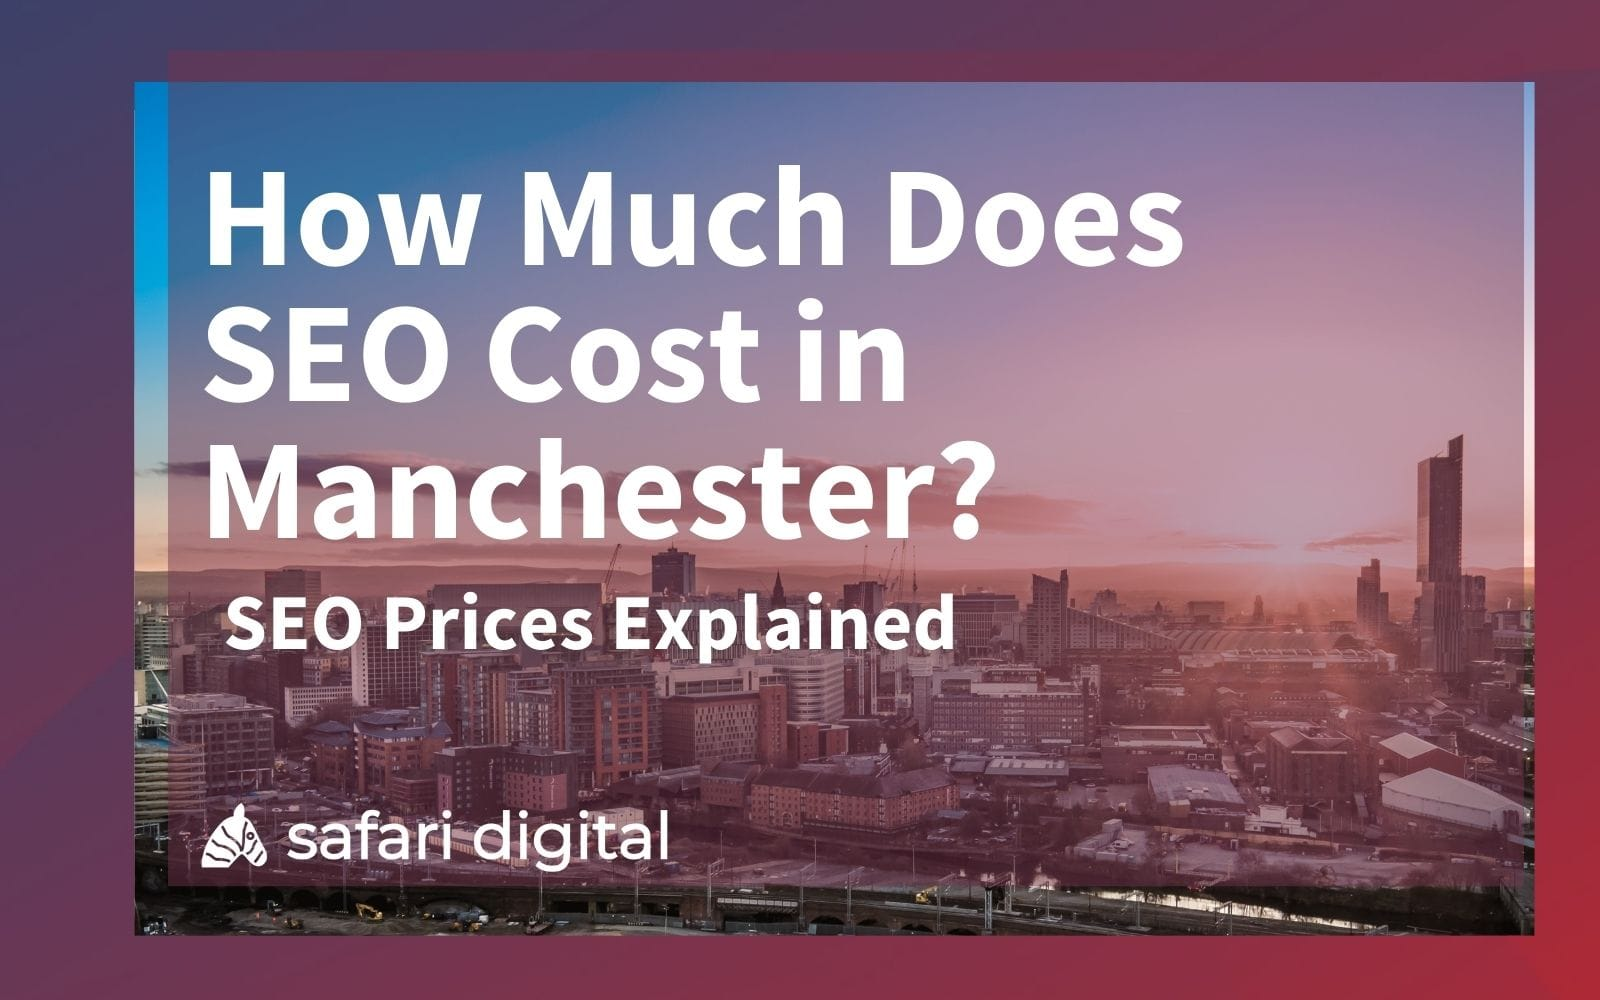 SEO cost in Manchester